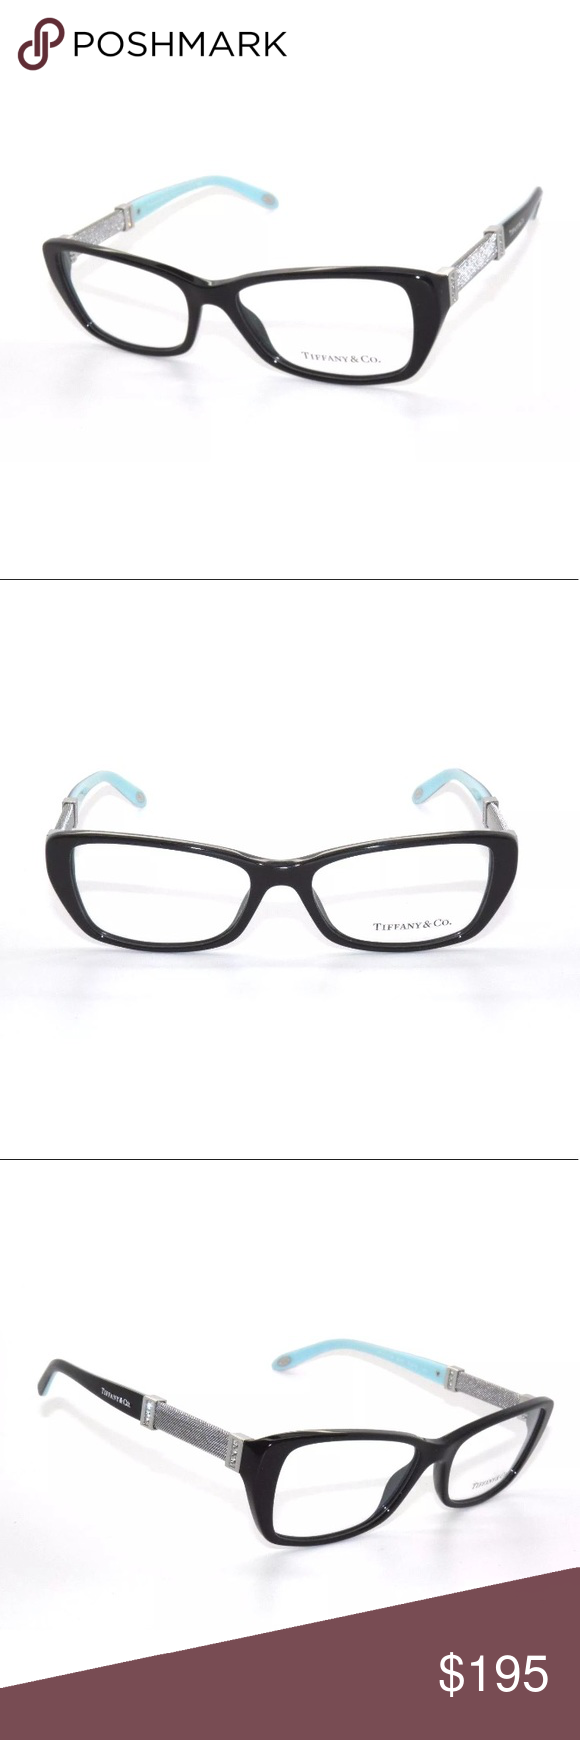 Tiffany & Co Black, Blue and Silver Glasses Frame NWT | Tiffany ...